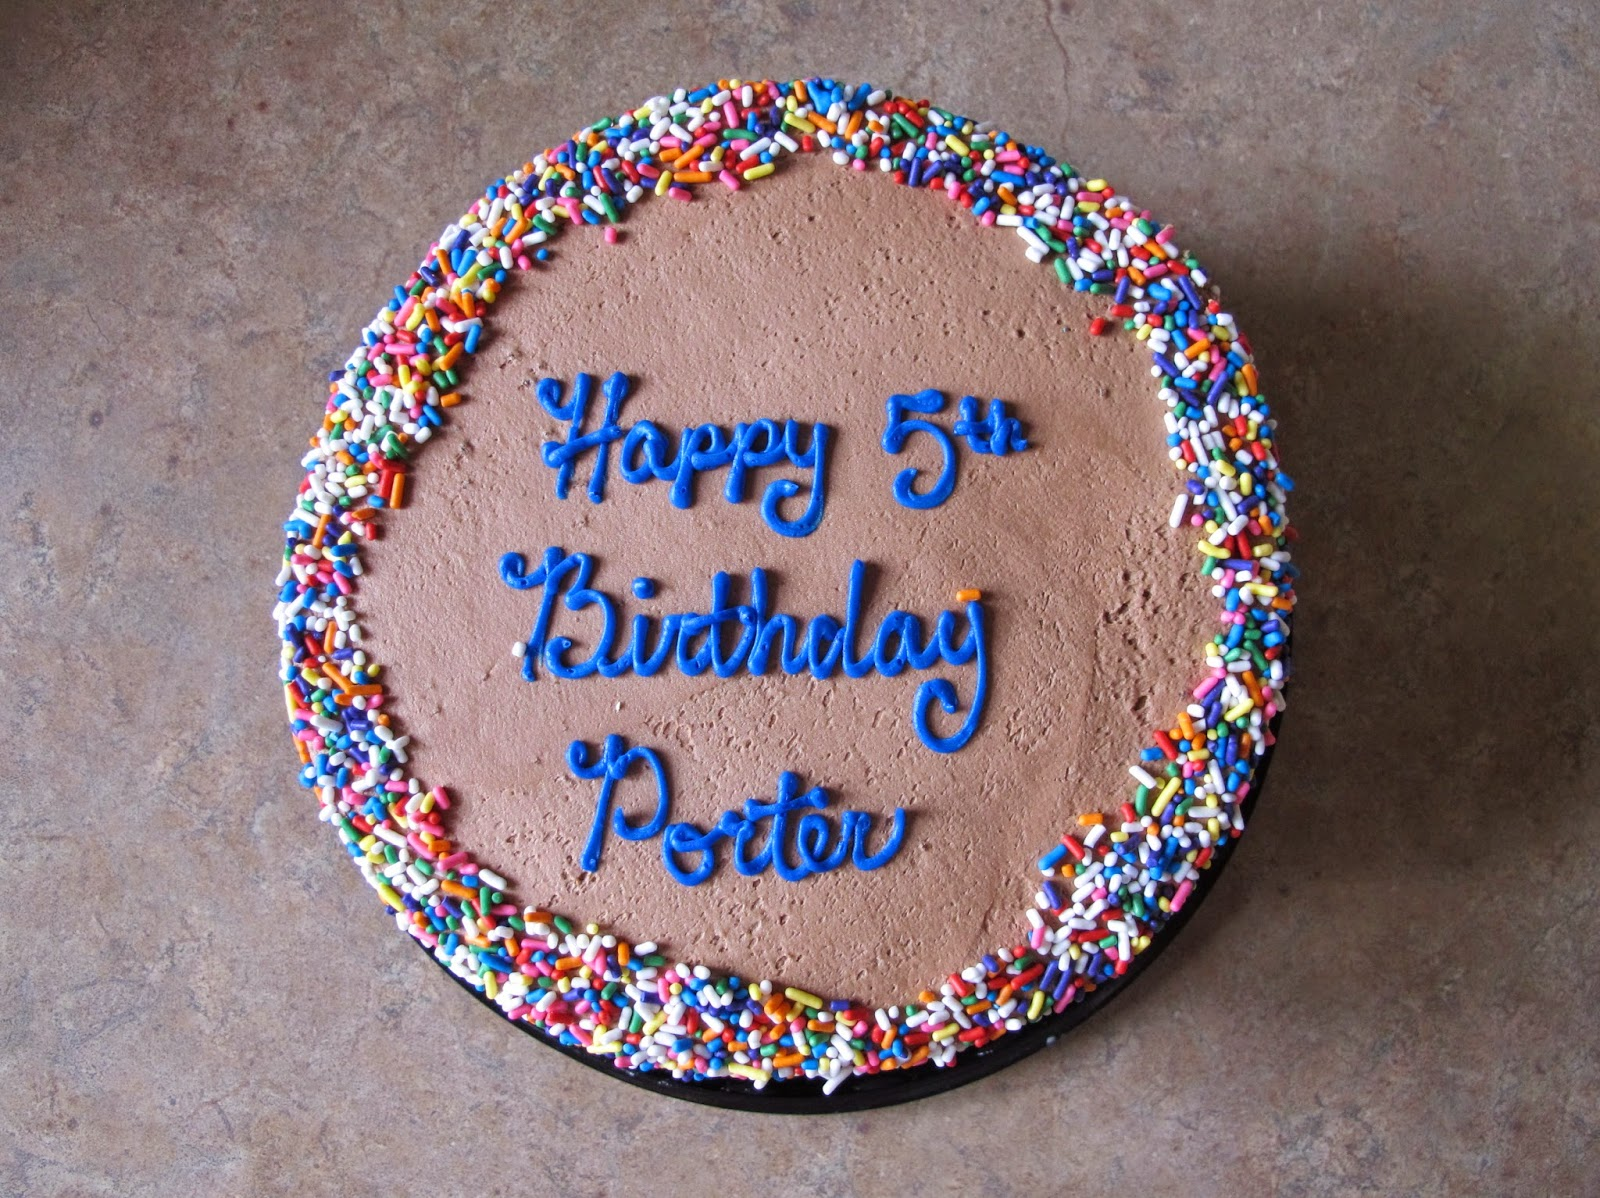 Porter's 5th Birthday Cake